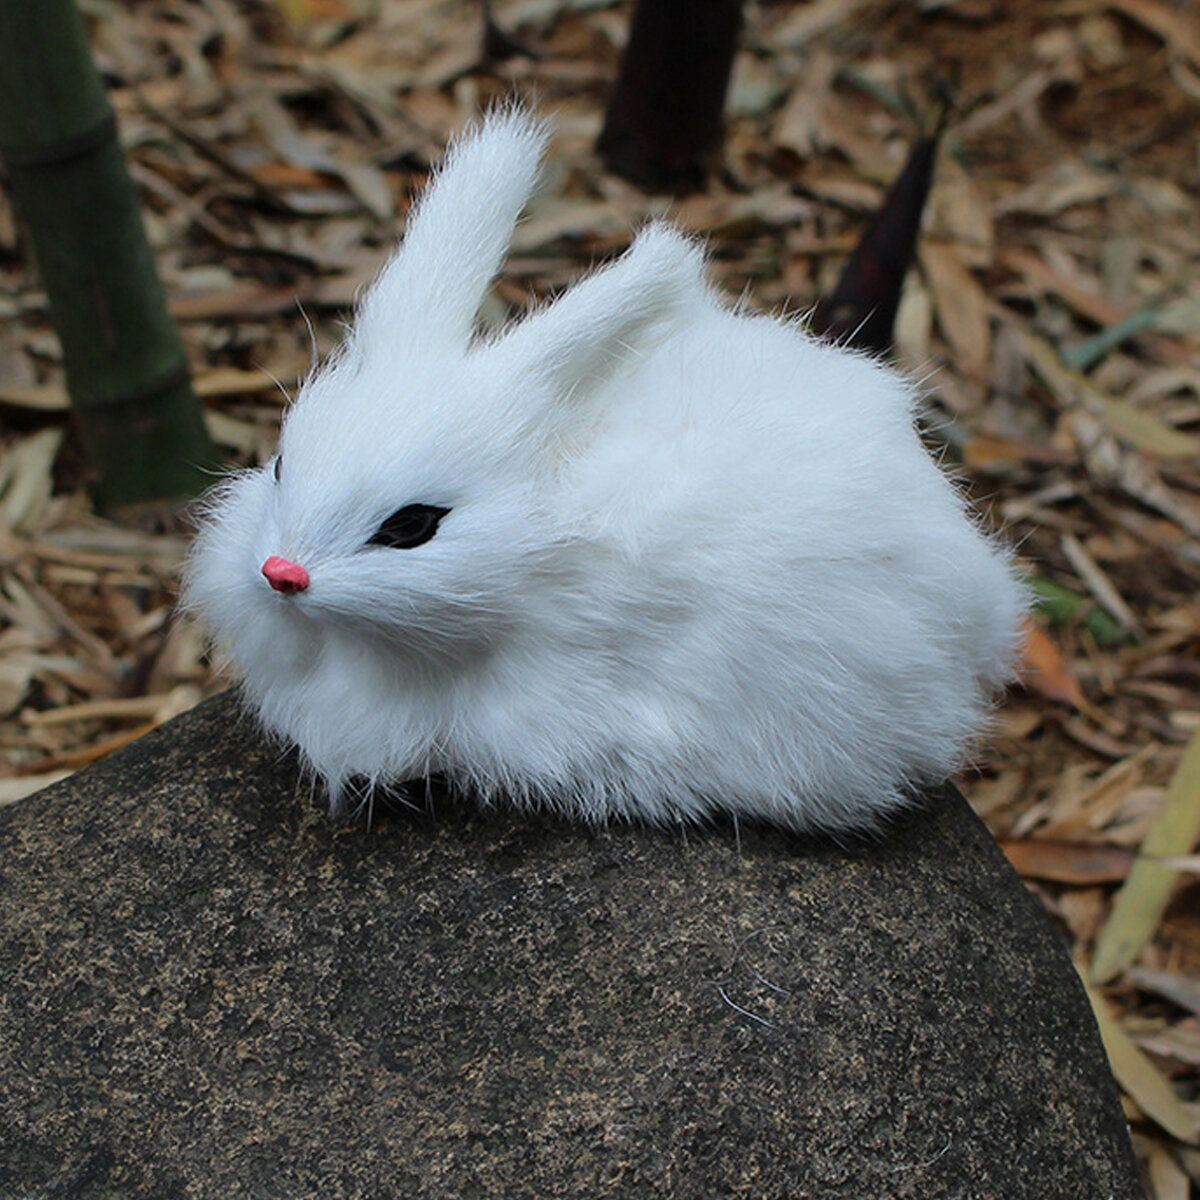 TKY US$4.82 15cm Mini Realistic Cute White Plush Rabbits Fur Lifelike Animal Furry Easter Bunny Stuffed Plush Toy